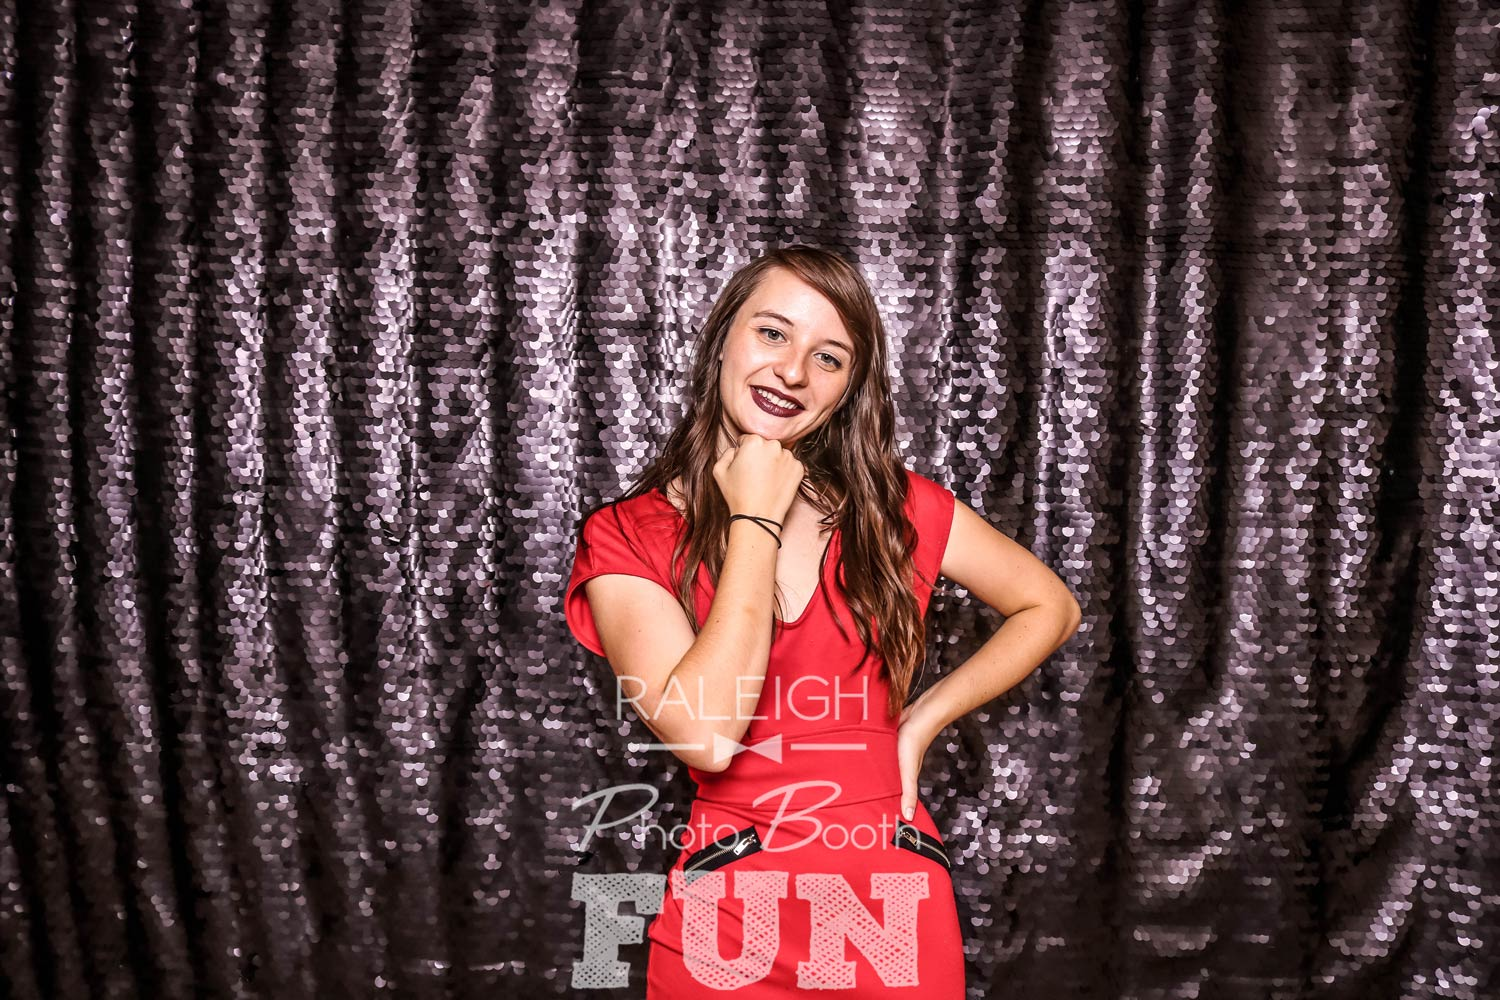 Black-Sequin-Raleigh-Photo-Booth-2